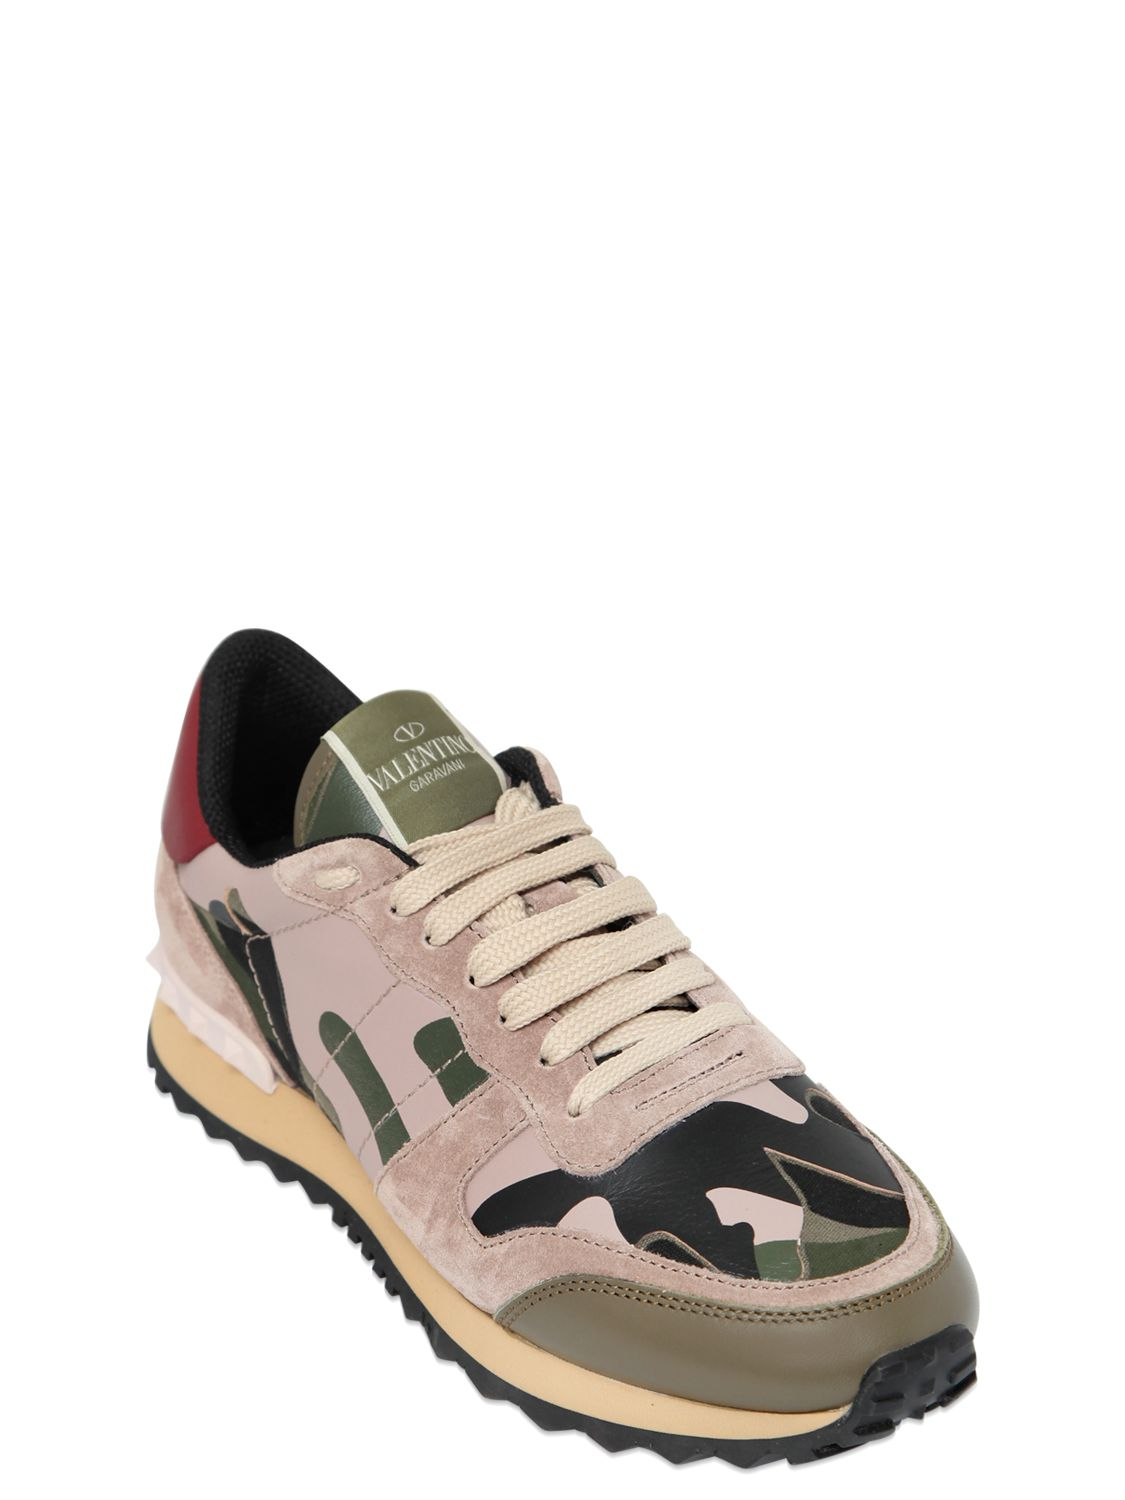 1ae0fcb8e77a3 Valentino Camouflage Leather & Suede Sneakers in Green - Lyst